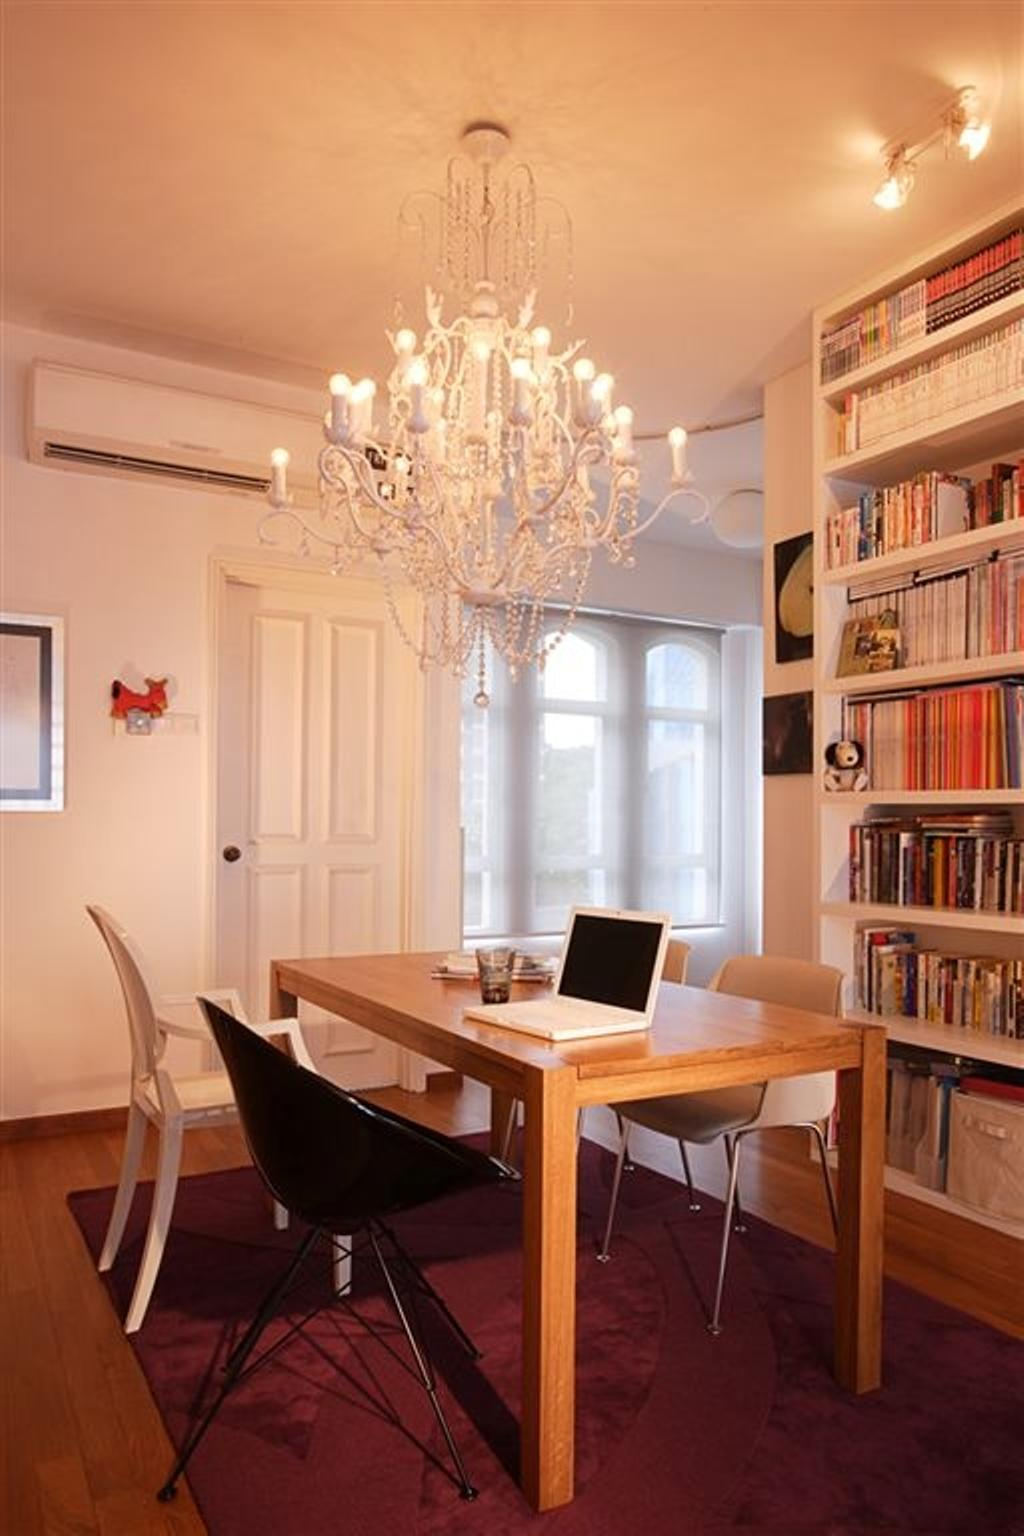 Eclectic, Condo, Dining Room, Chateau Le Fame, Interior Designer, Free Space Intent, Dining Table, Furniture, Table, Sink, Bookcase, Indoors, Interior Design, Room, Book